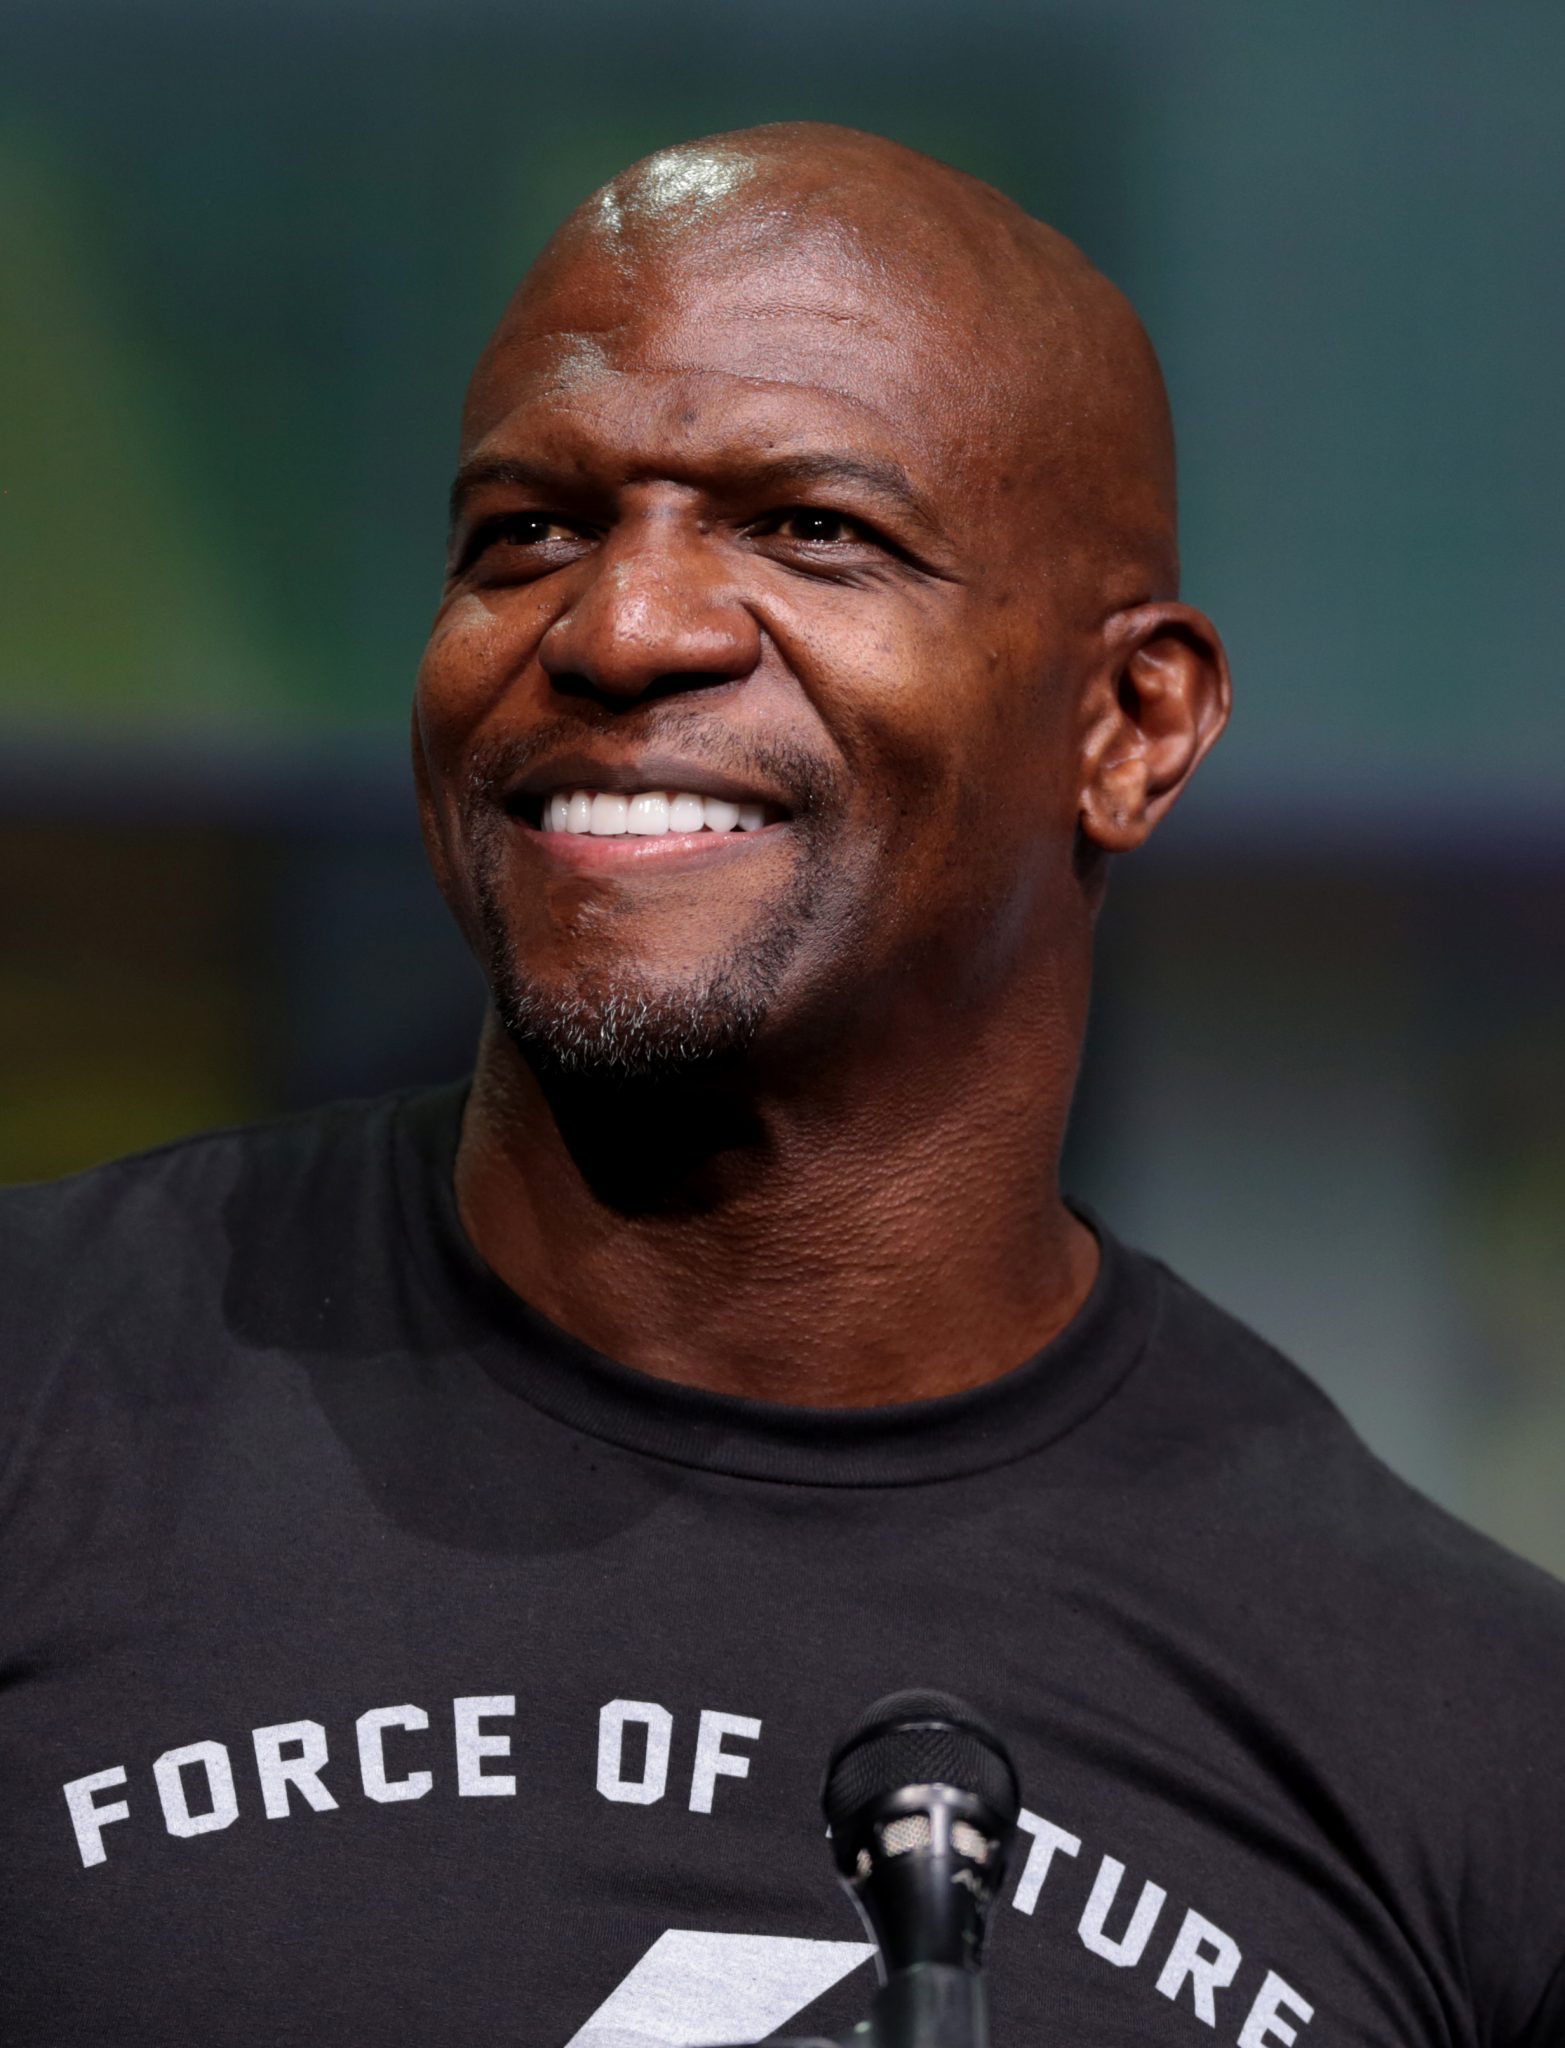 A photo of Terry Crews